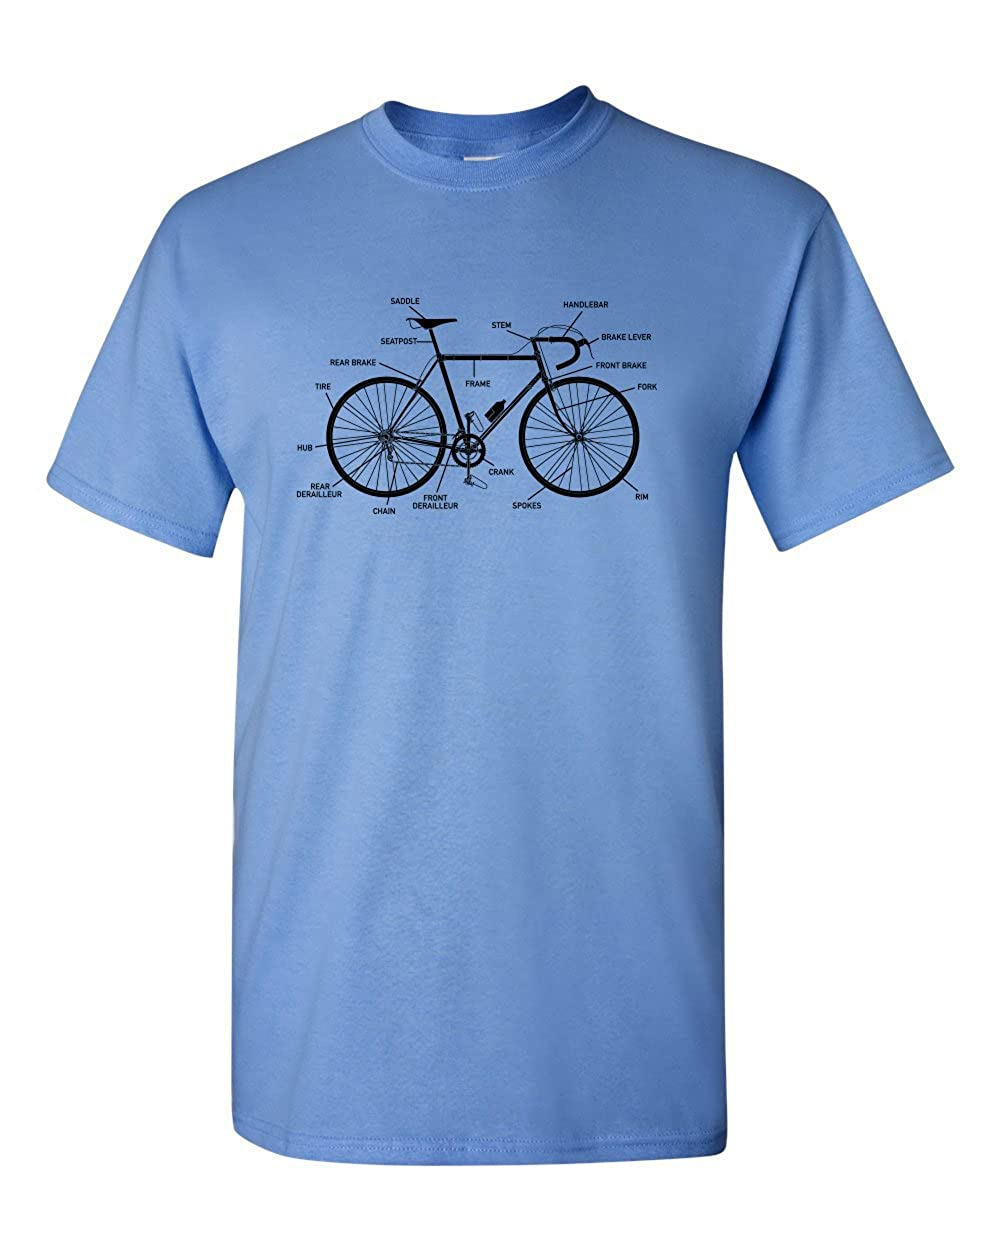 4ef11313 Thread Science Bike Bicycle Anatomy Hipster History Funny Adult Humor Men's  T-Shirt